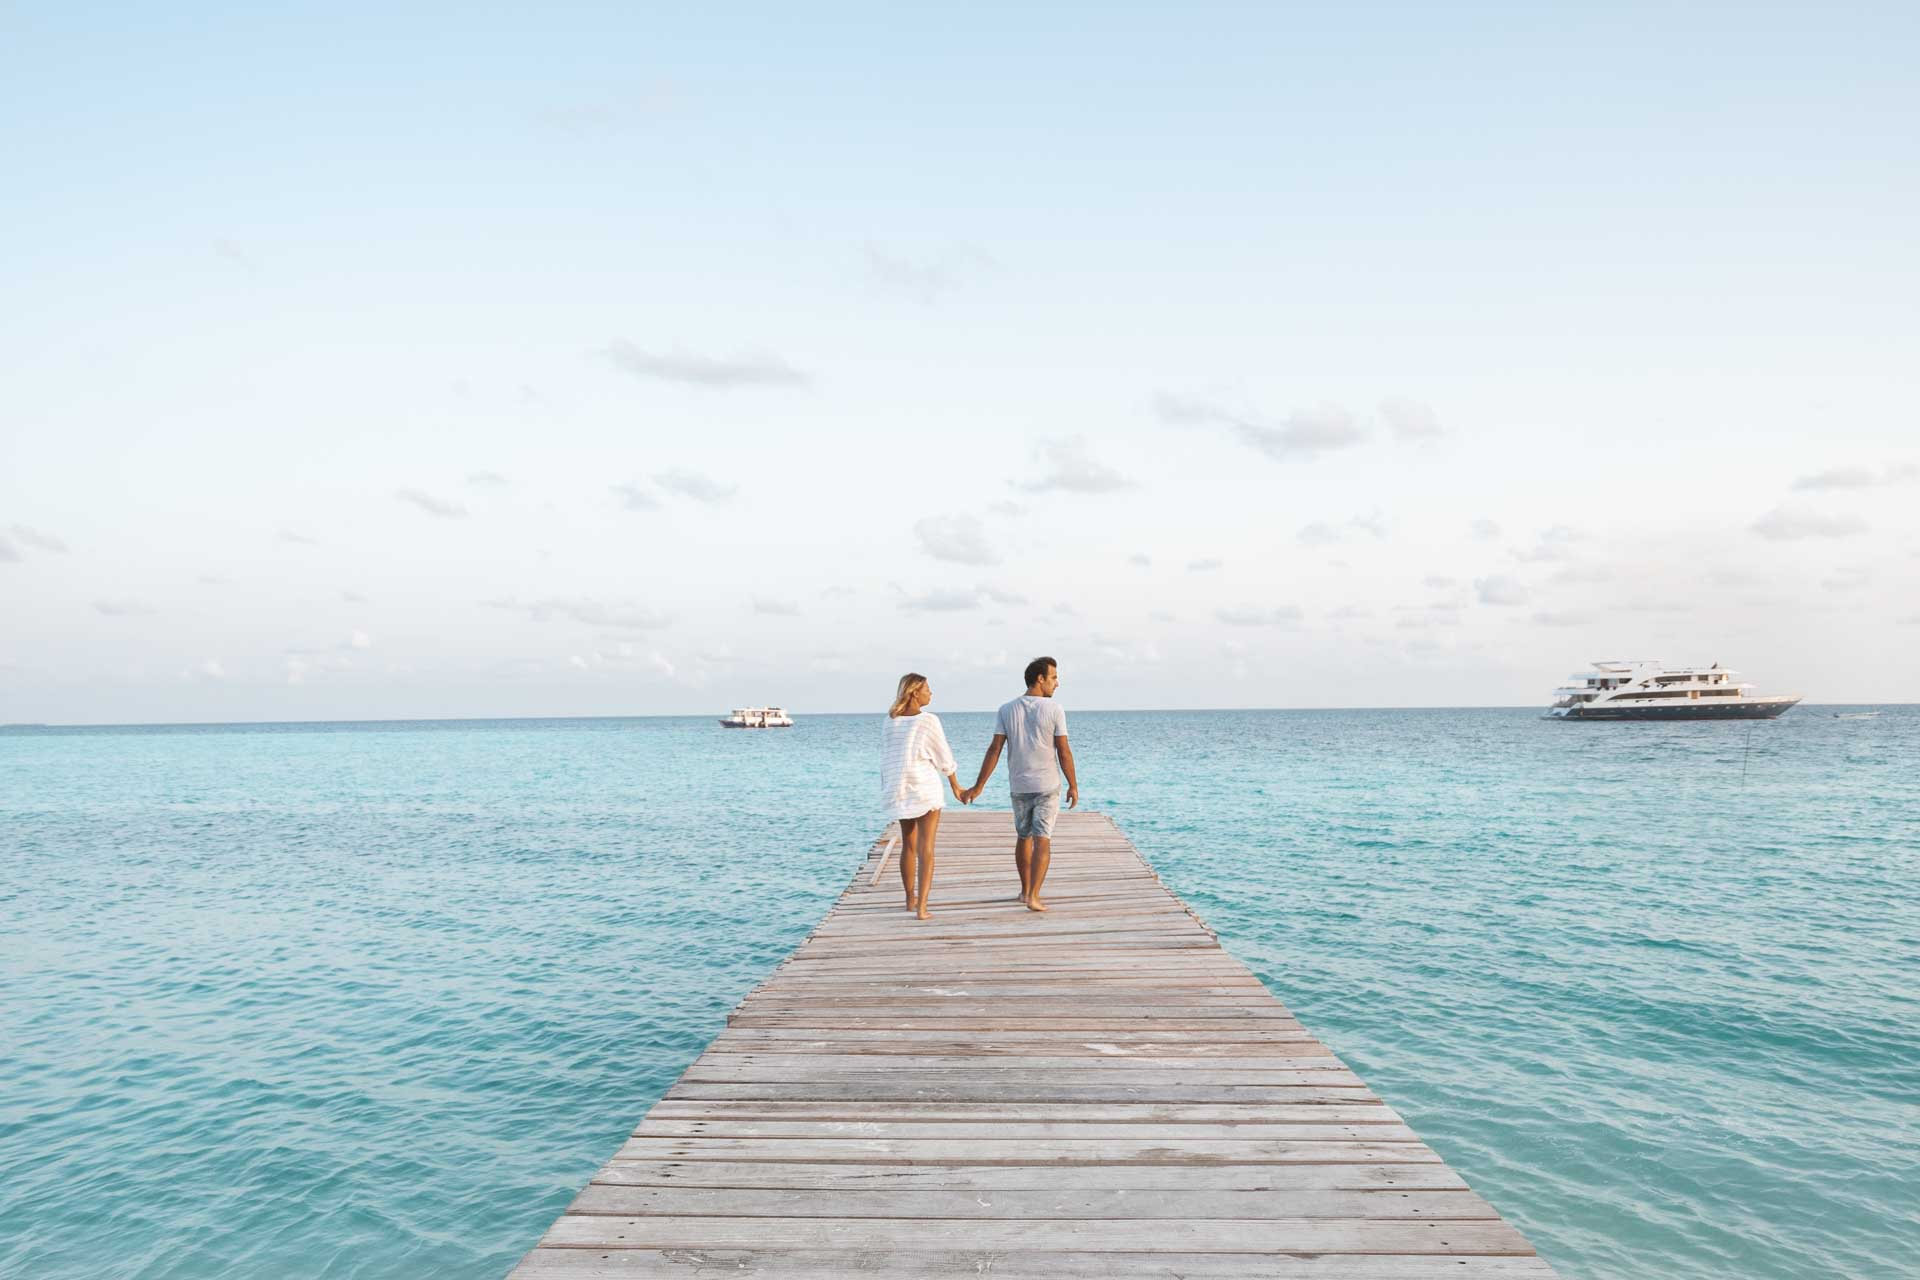 Maldives - everything you need to know before you go